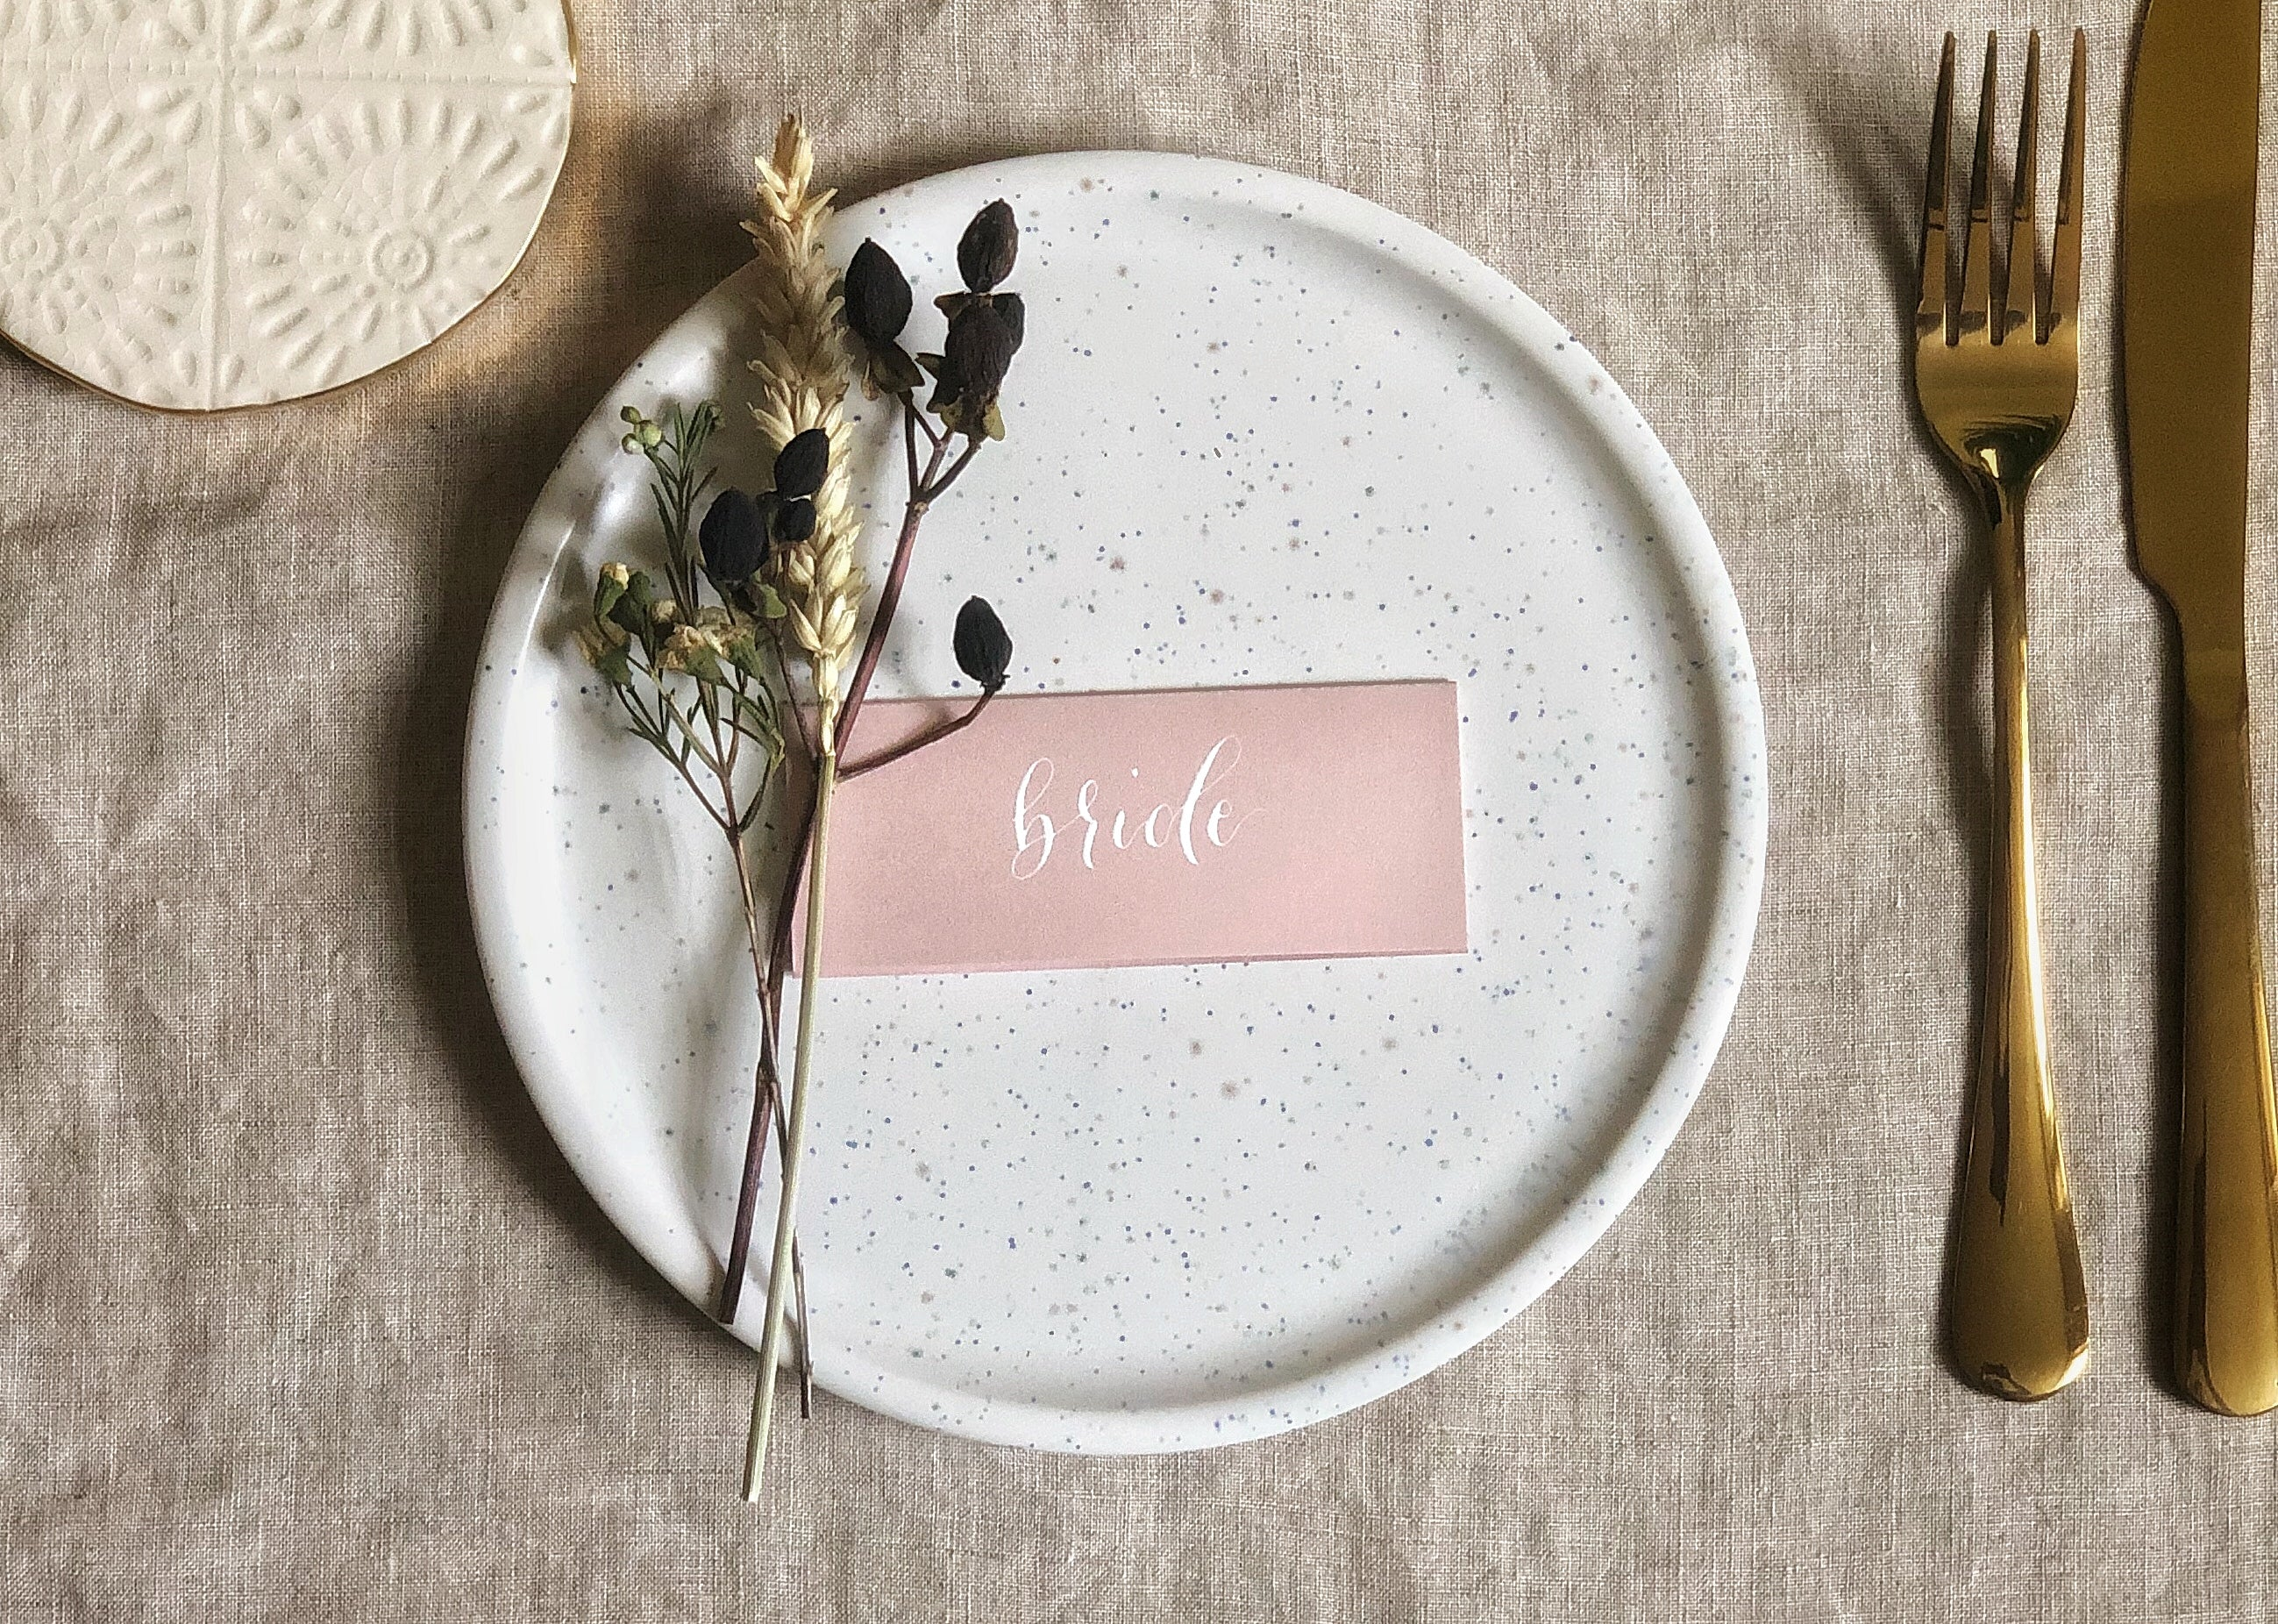 dusty pink wedding place card with white calligraphy